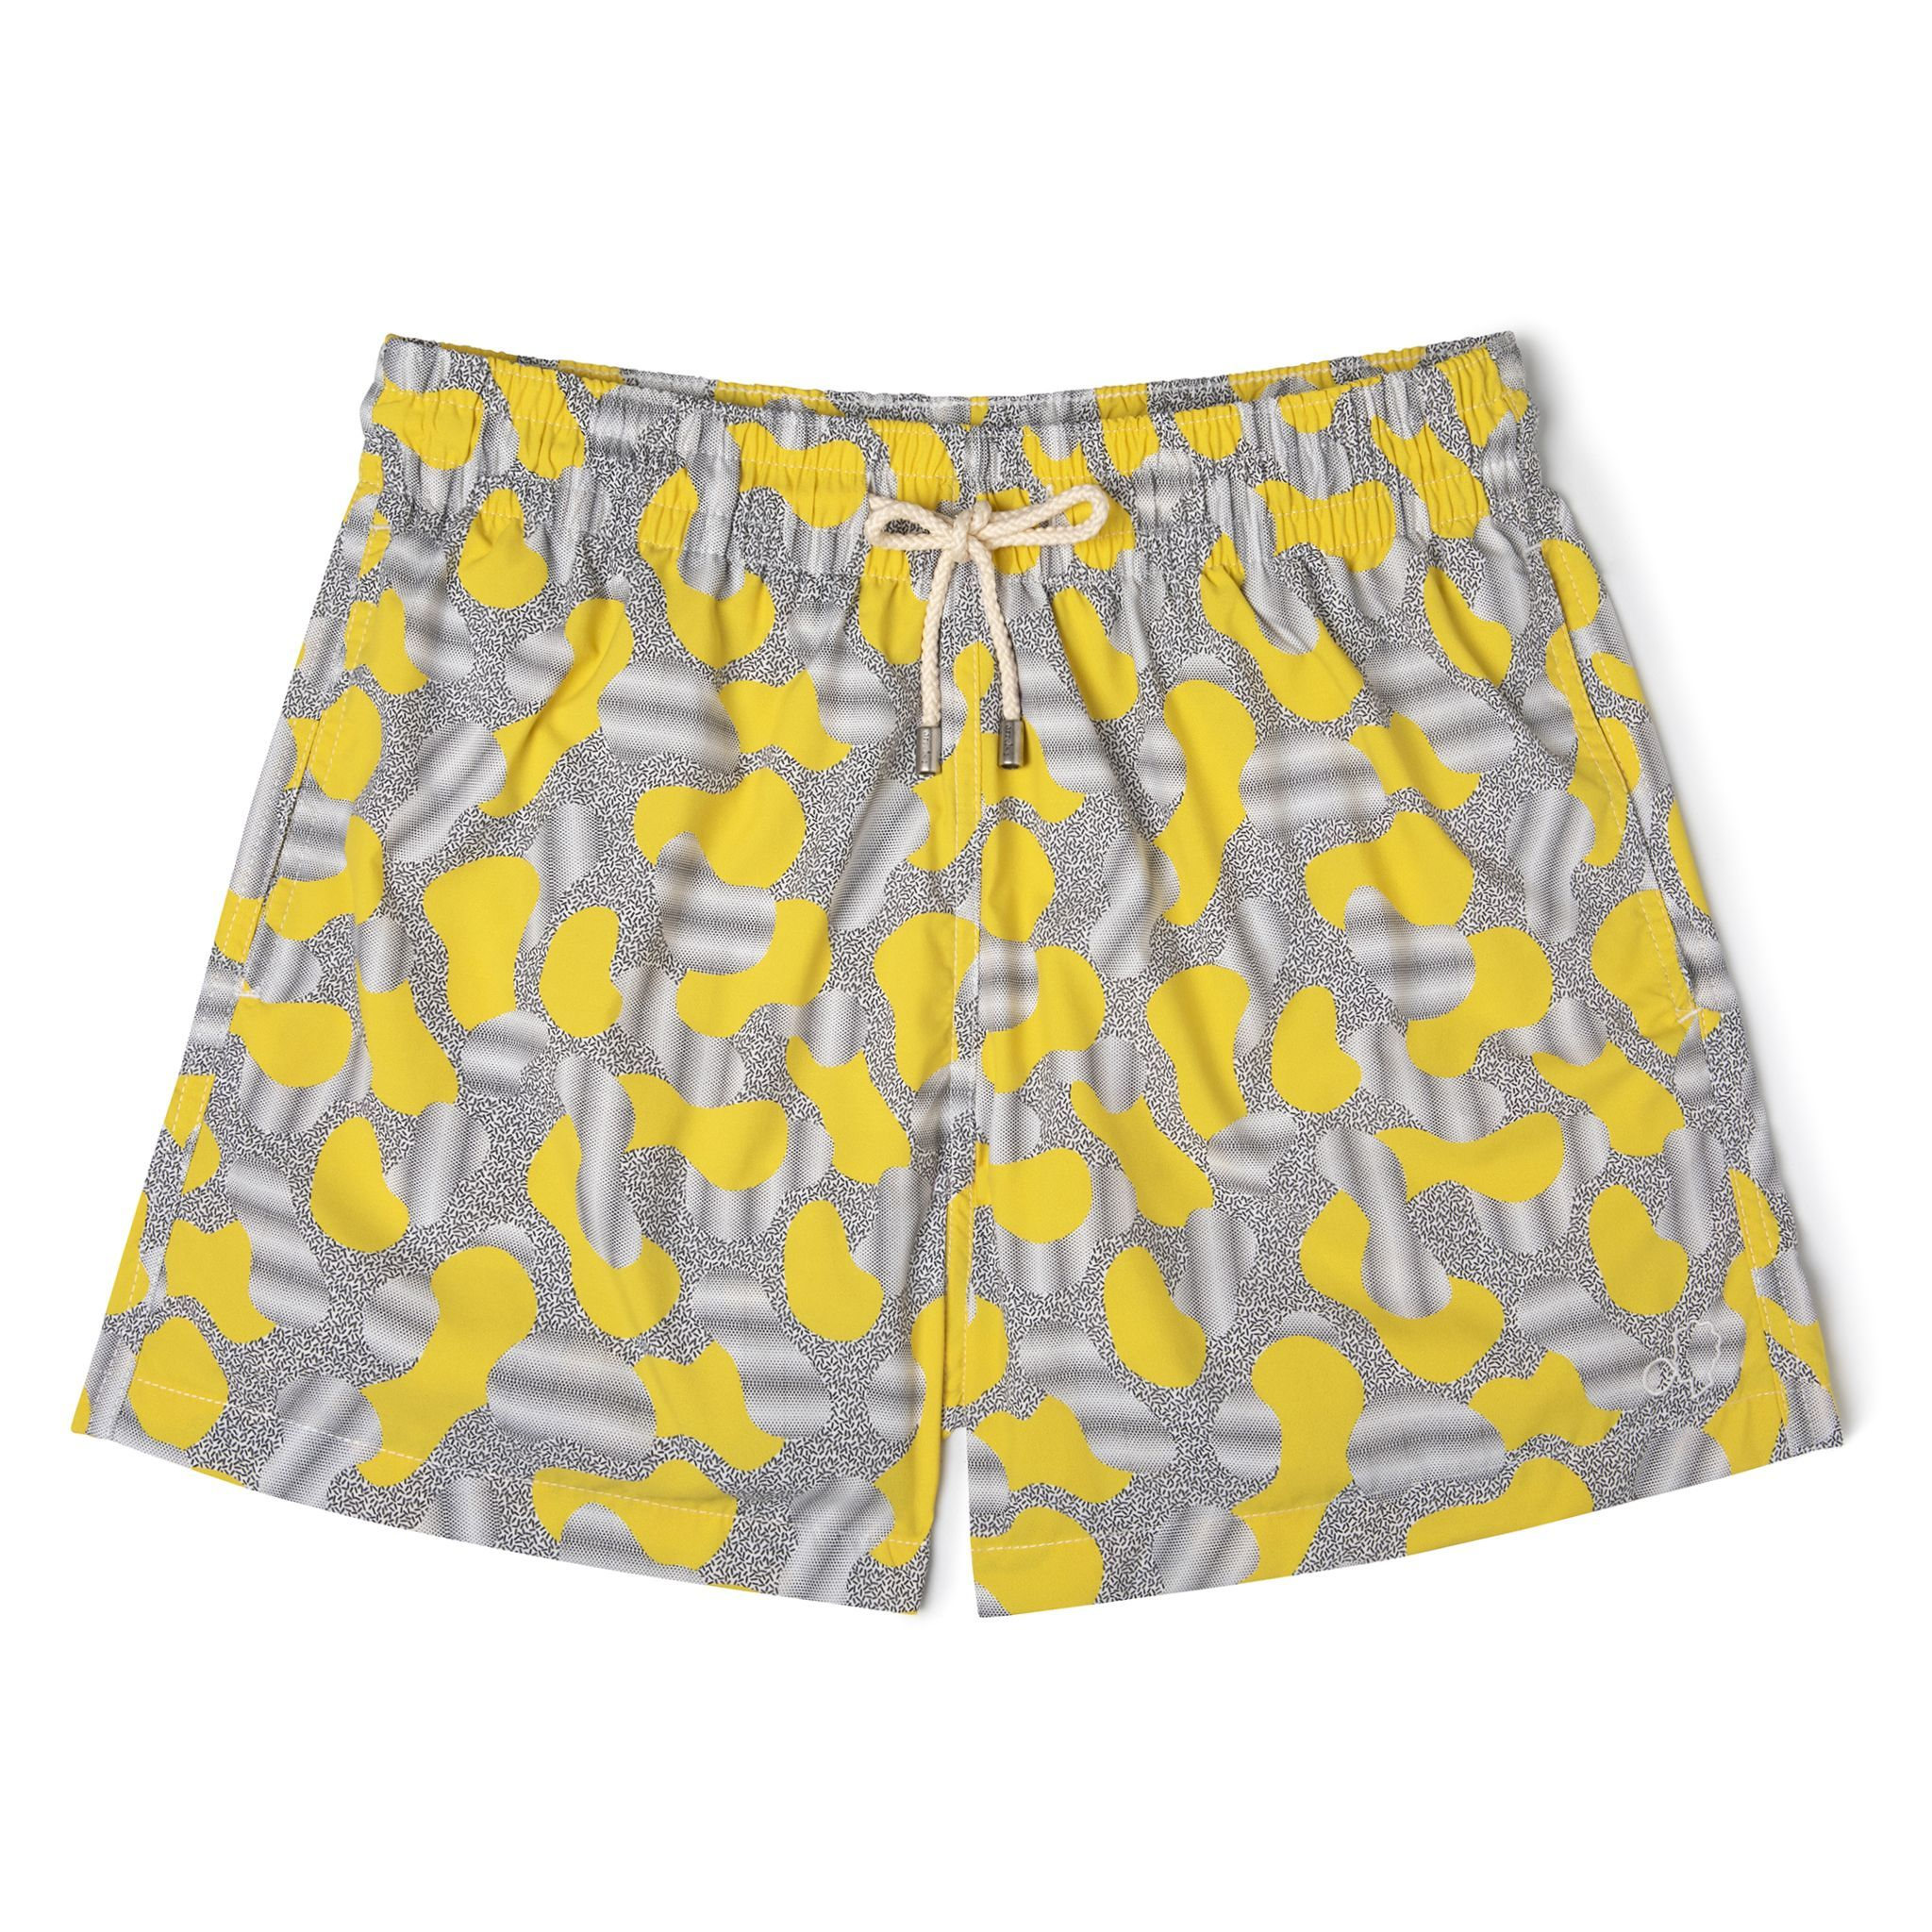 Short-Length Swim Shorts Yellow Dots